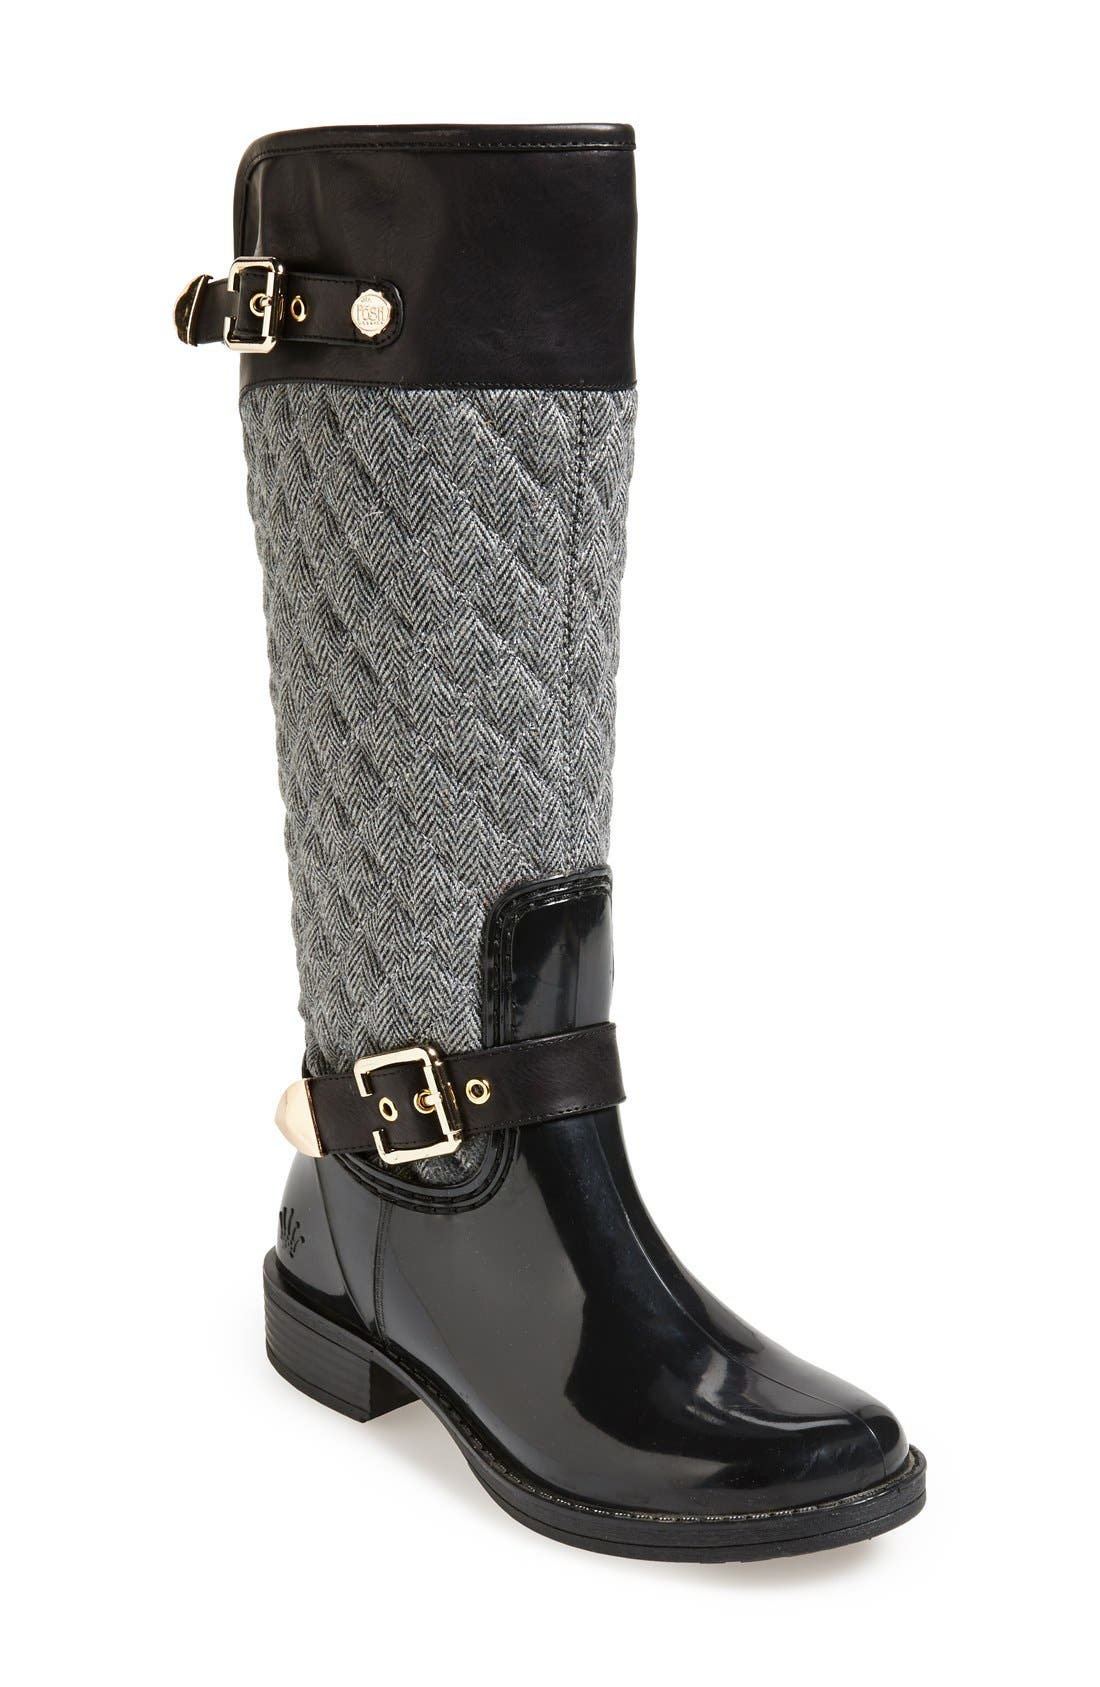 Alternate Image 1 Selected - Posh Wellies 'Peacon' Quilted Tall Rain Boot (Women)